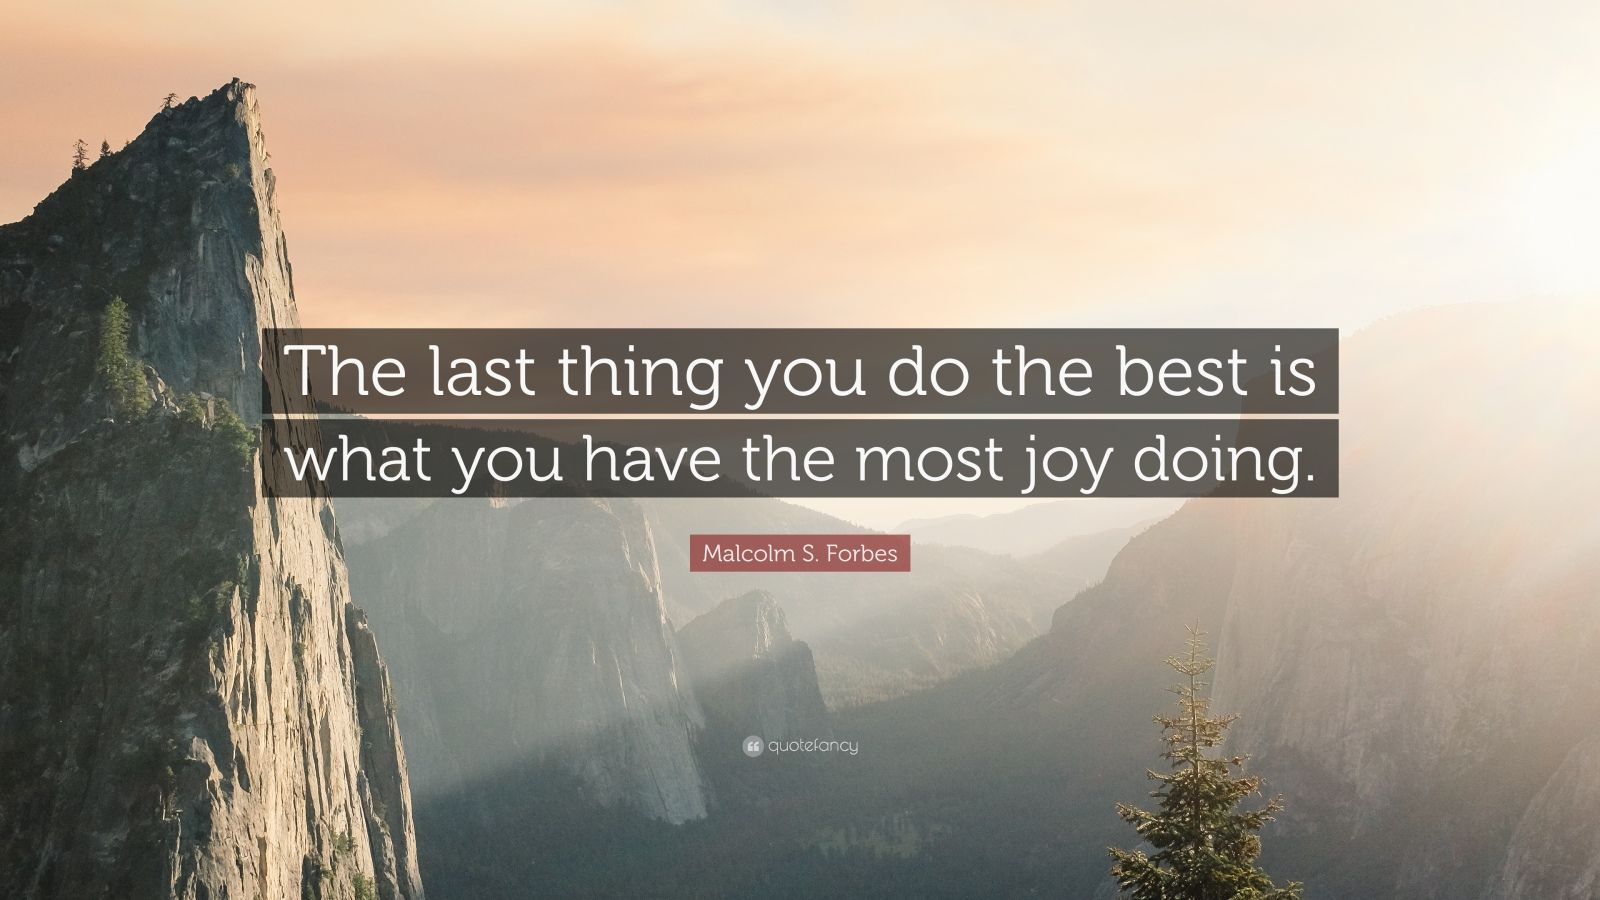 """Malcolm S. Forbes Quote: """"The last thing you do the best is what you have the most joy doing."""""""